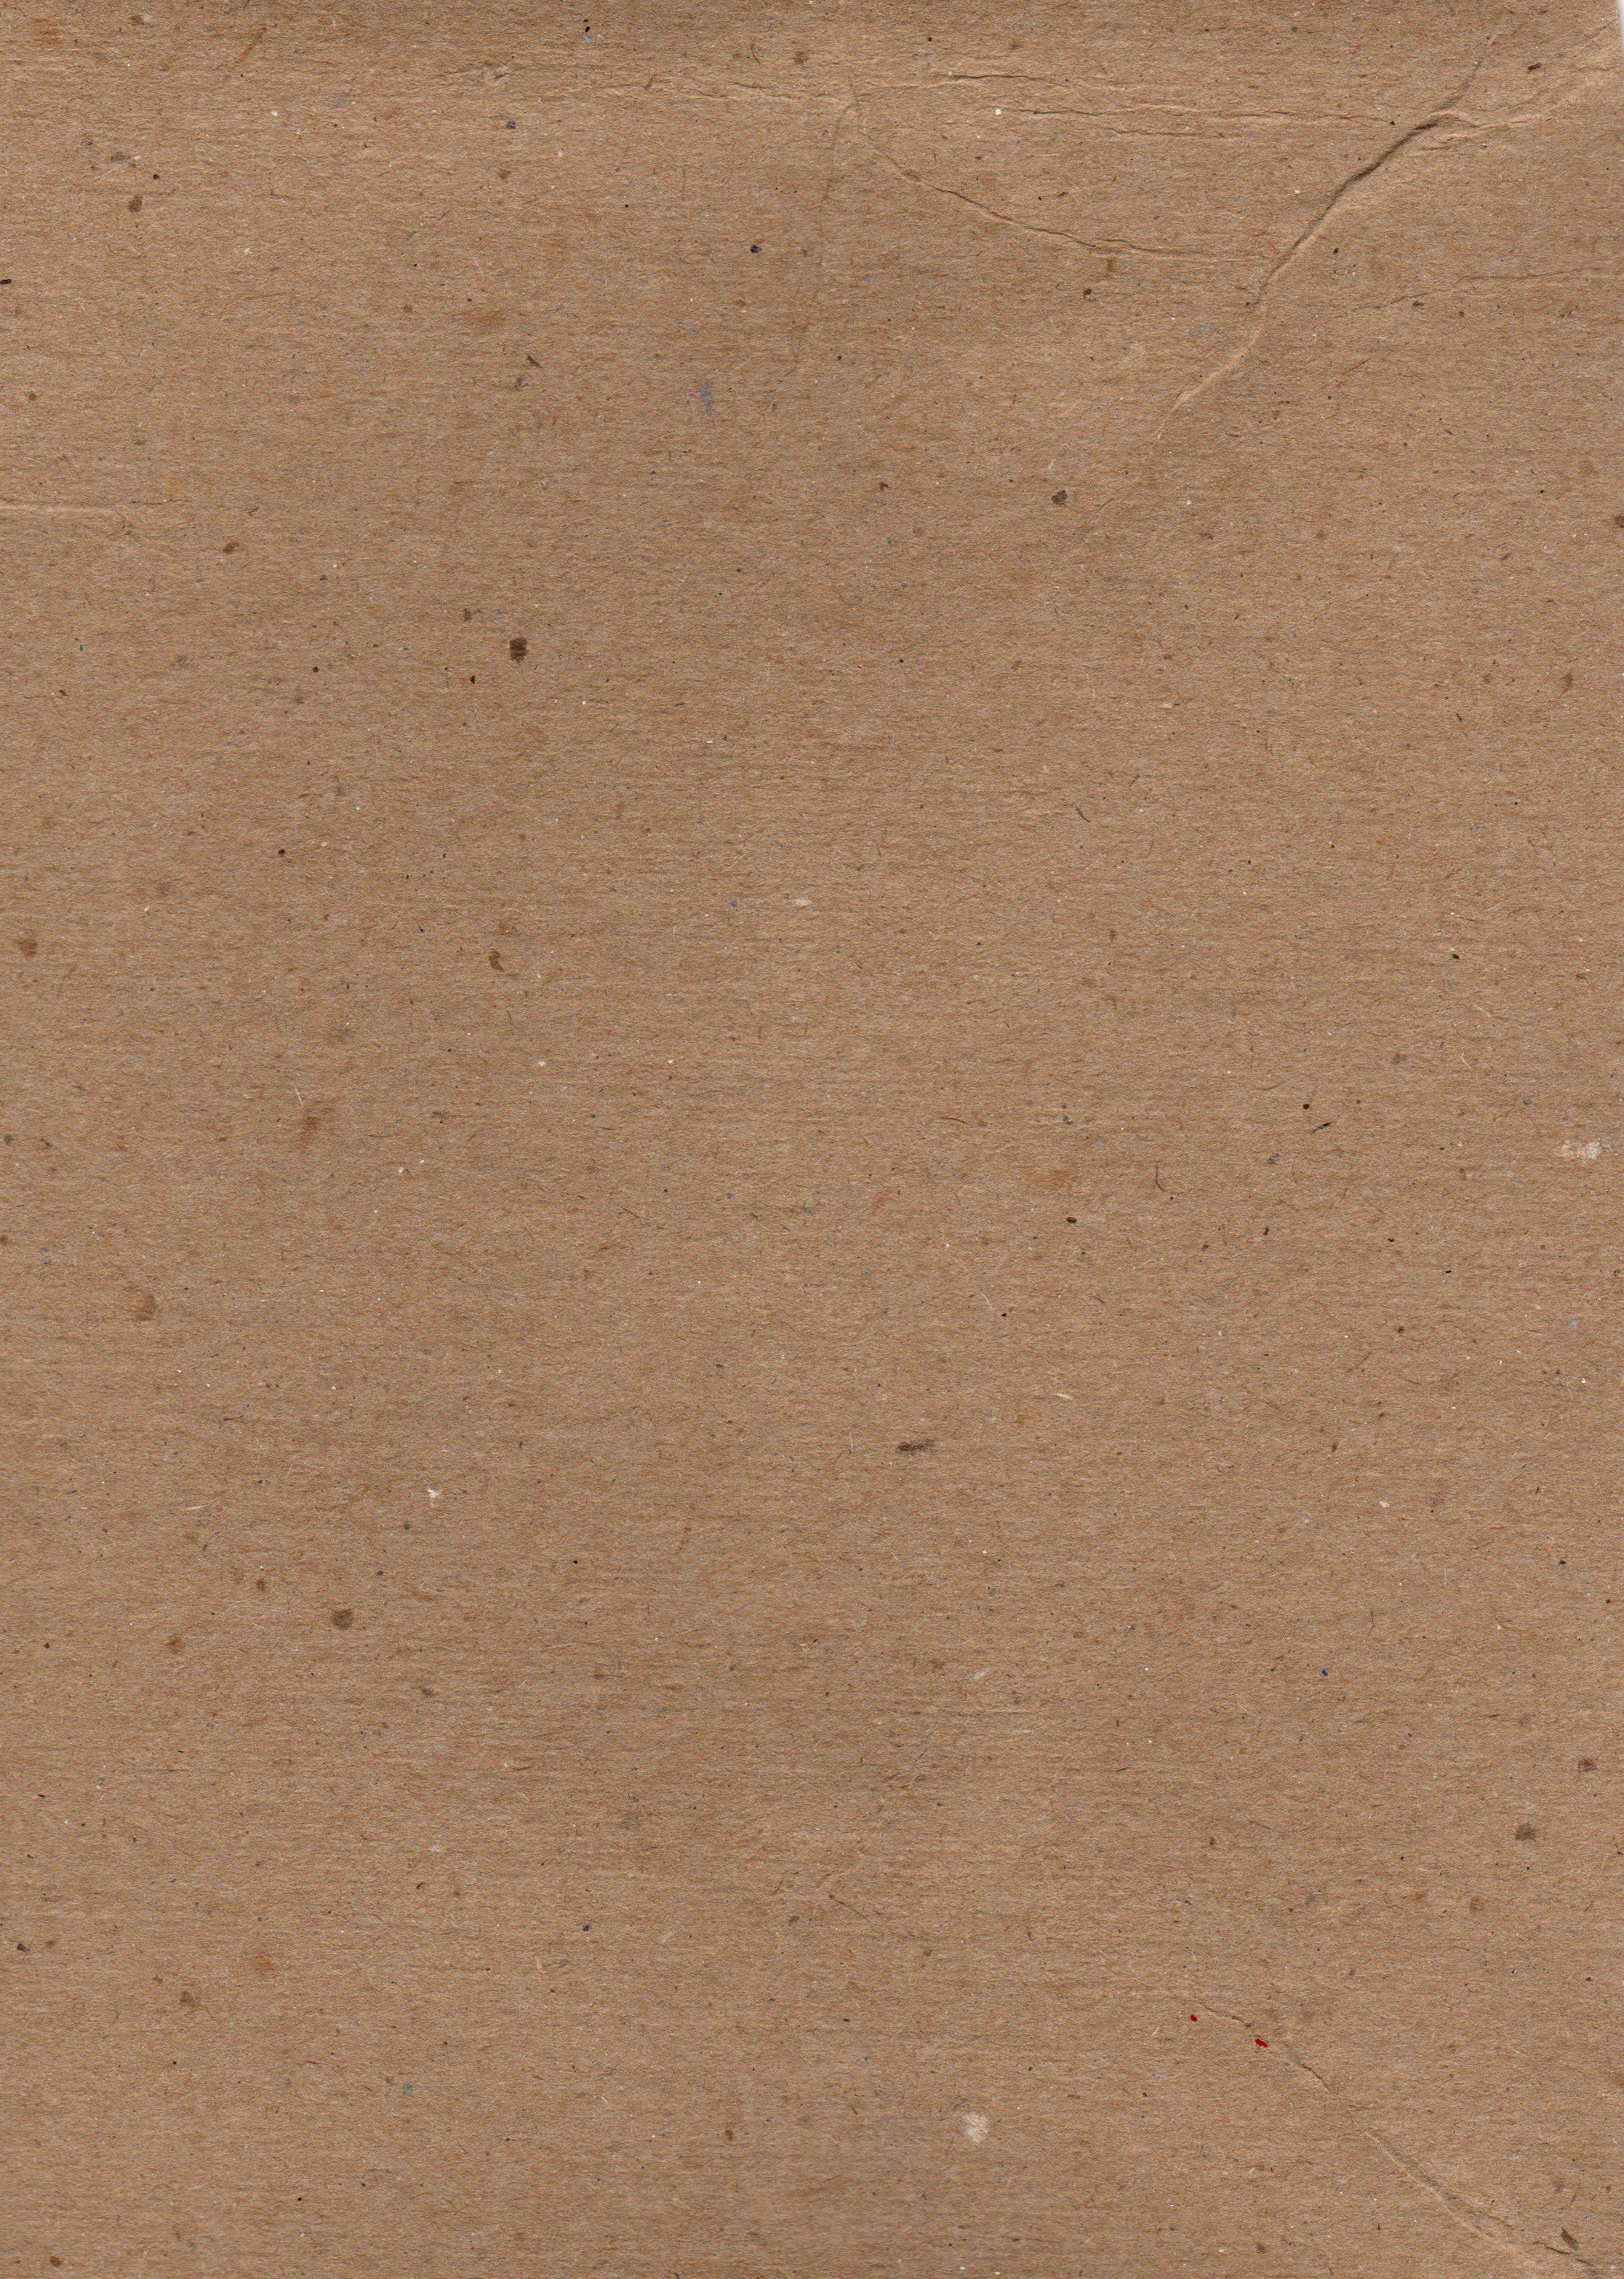 Free High Resolution Textures - Lost and Taken - 15 Brown Paper ...